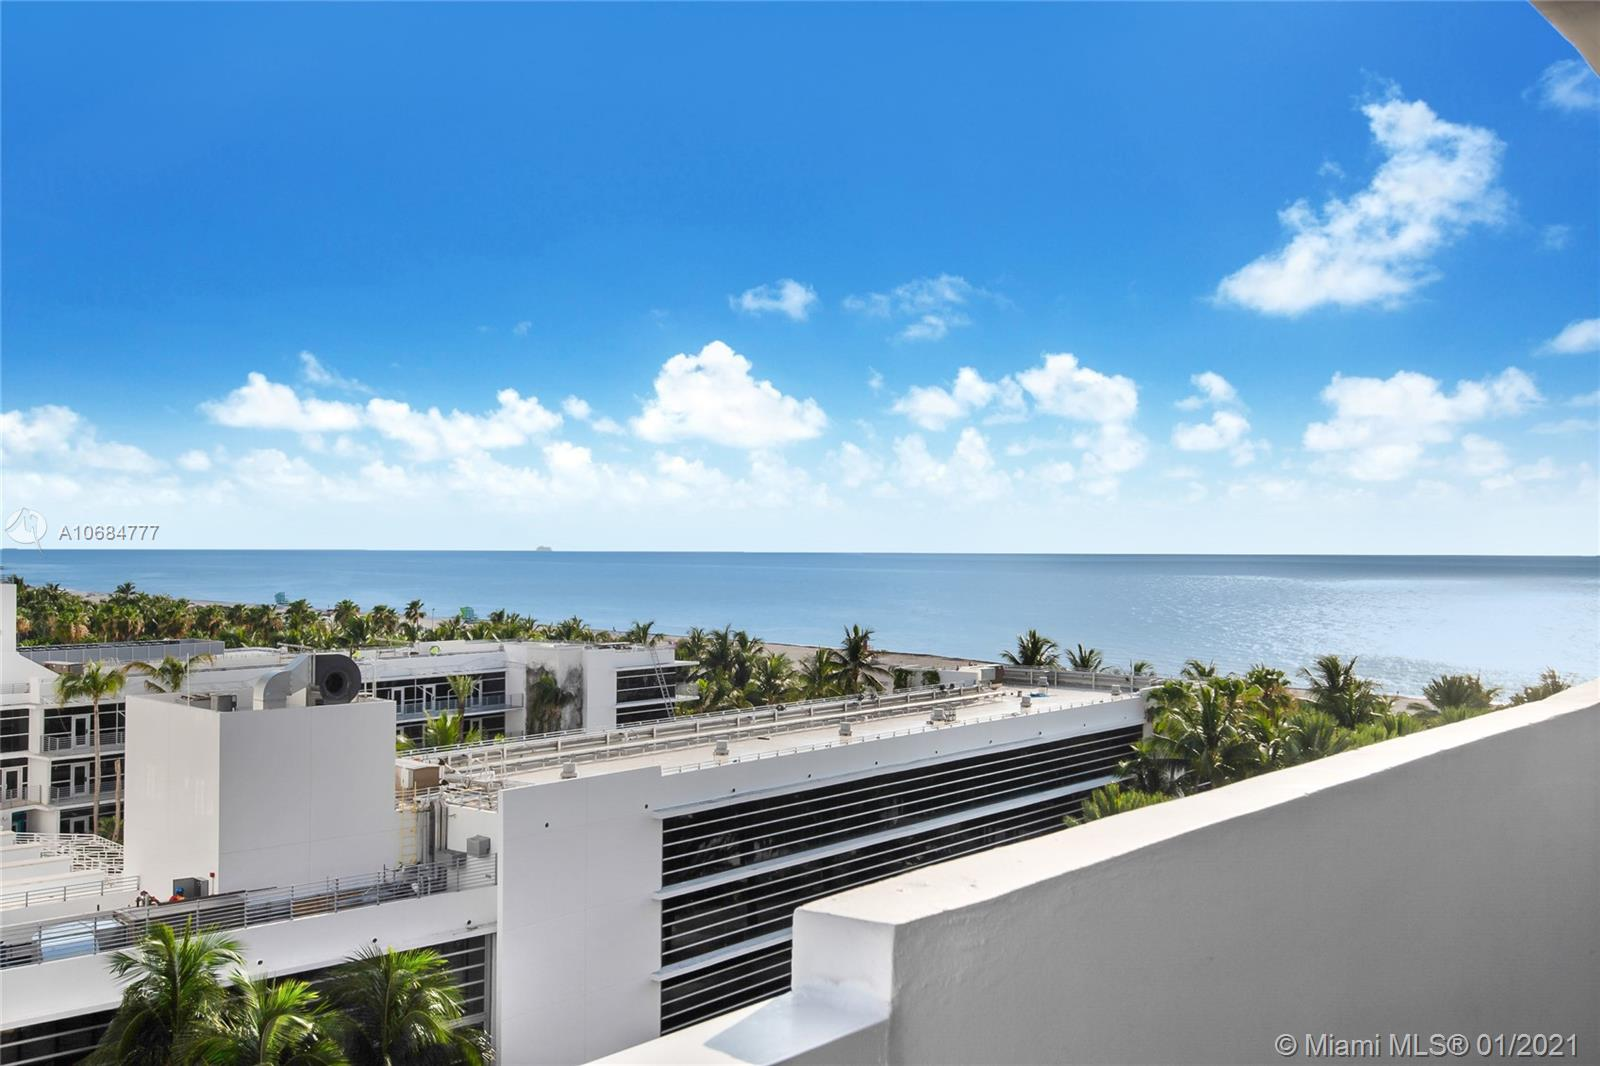 100 Lincoln Rd # 827, Miami Beach, Florida 33139, ,1 BathroomBathrooms,Residential,For Sale,100 Lincoln Rd # 827,A10684777